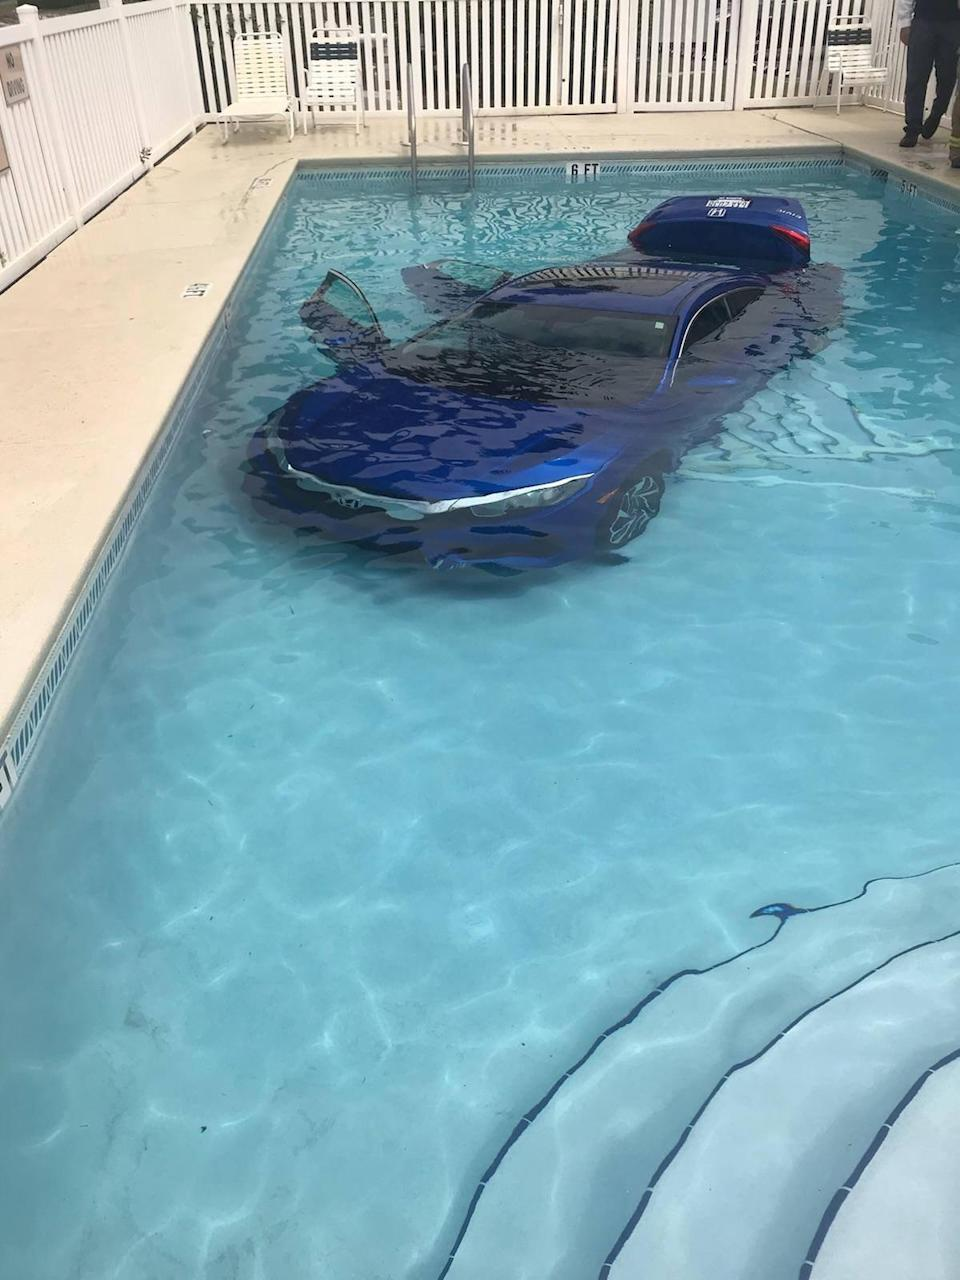 <em>No injuries – despite being in the car when it went into the pool, the woman's husband and daughter were fine</em>